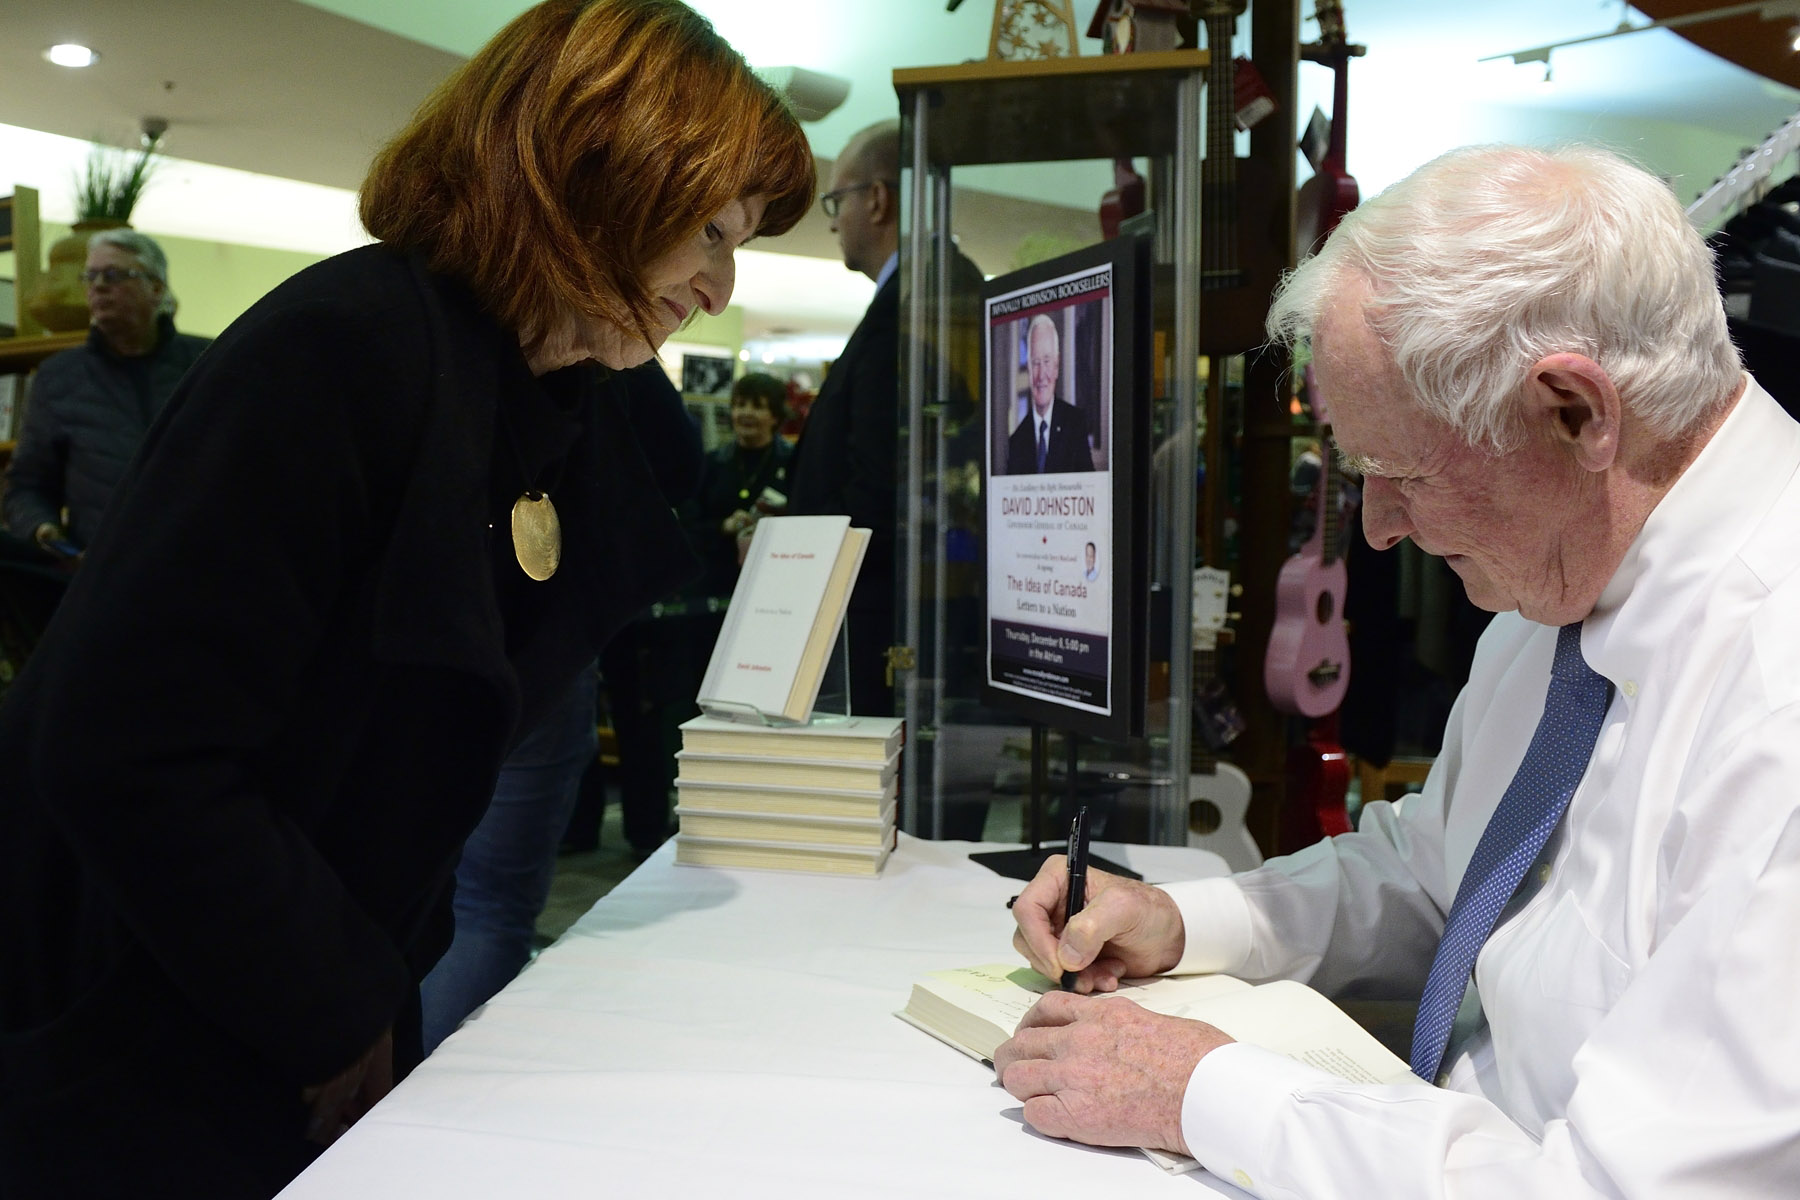 Afterwards, Hi Excellency signed copies of his book.